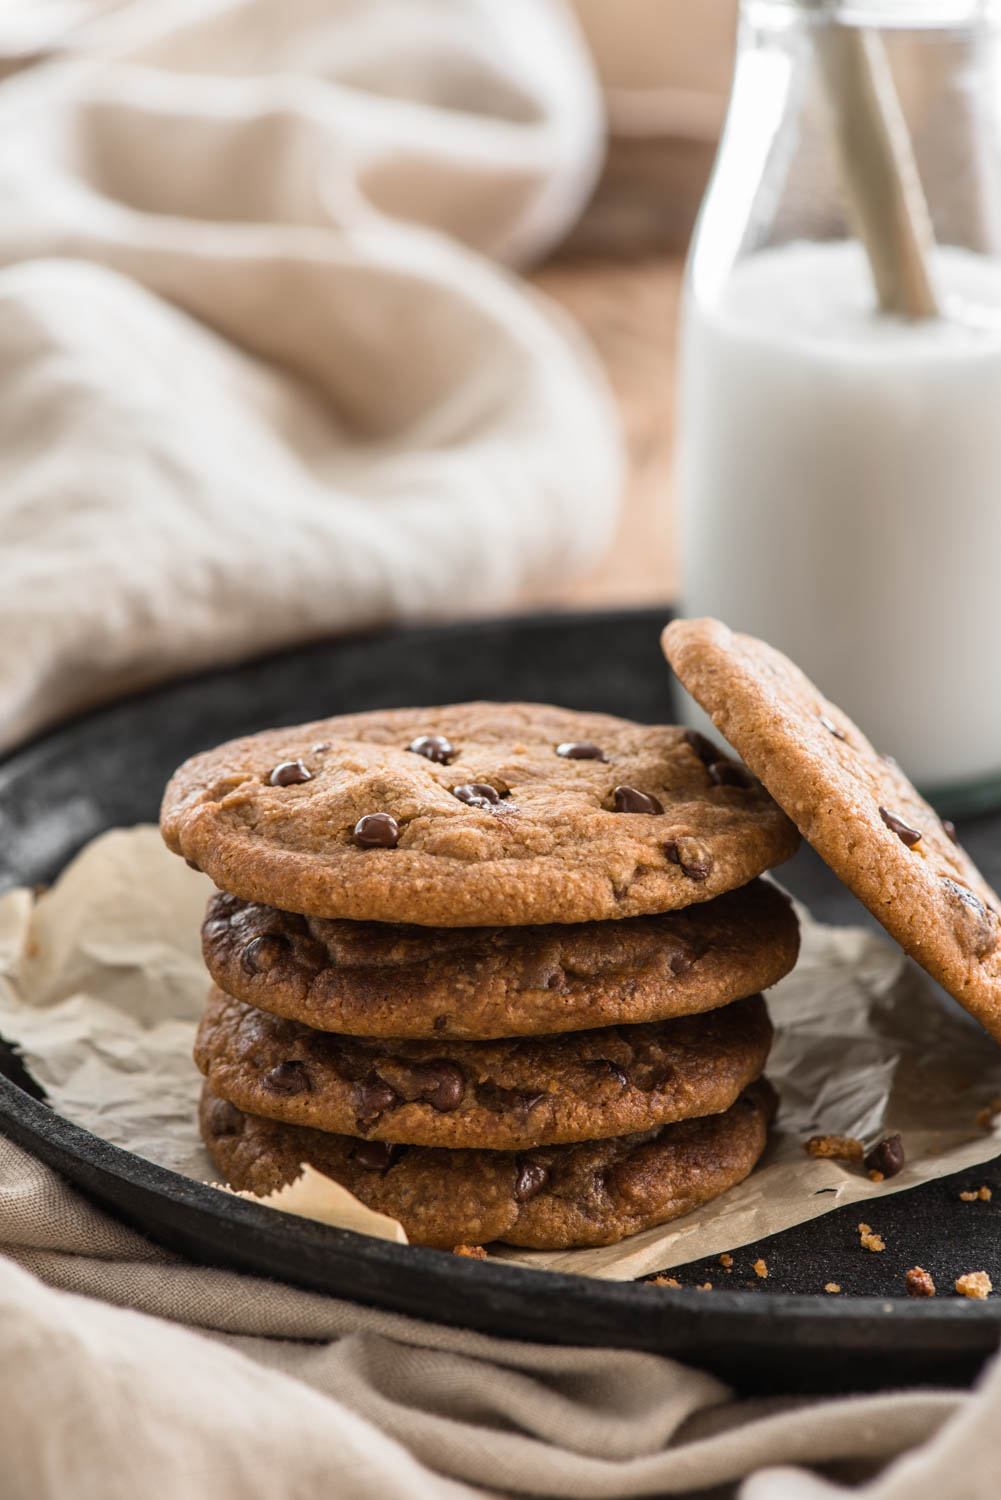 stack of chocolate chip cookies with milk glass in the background